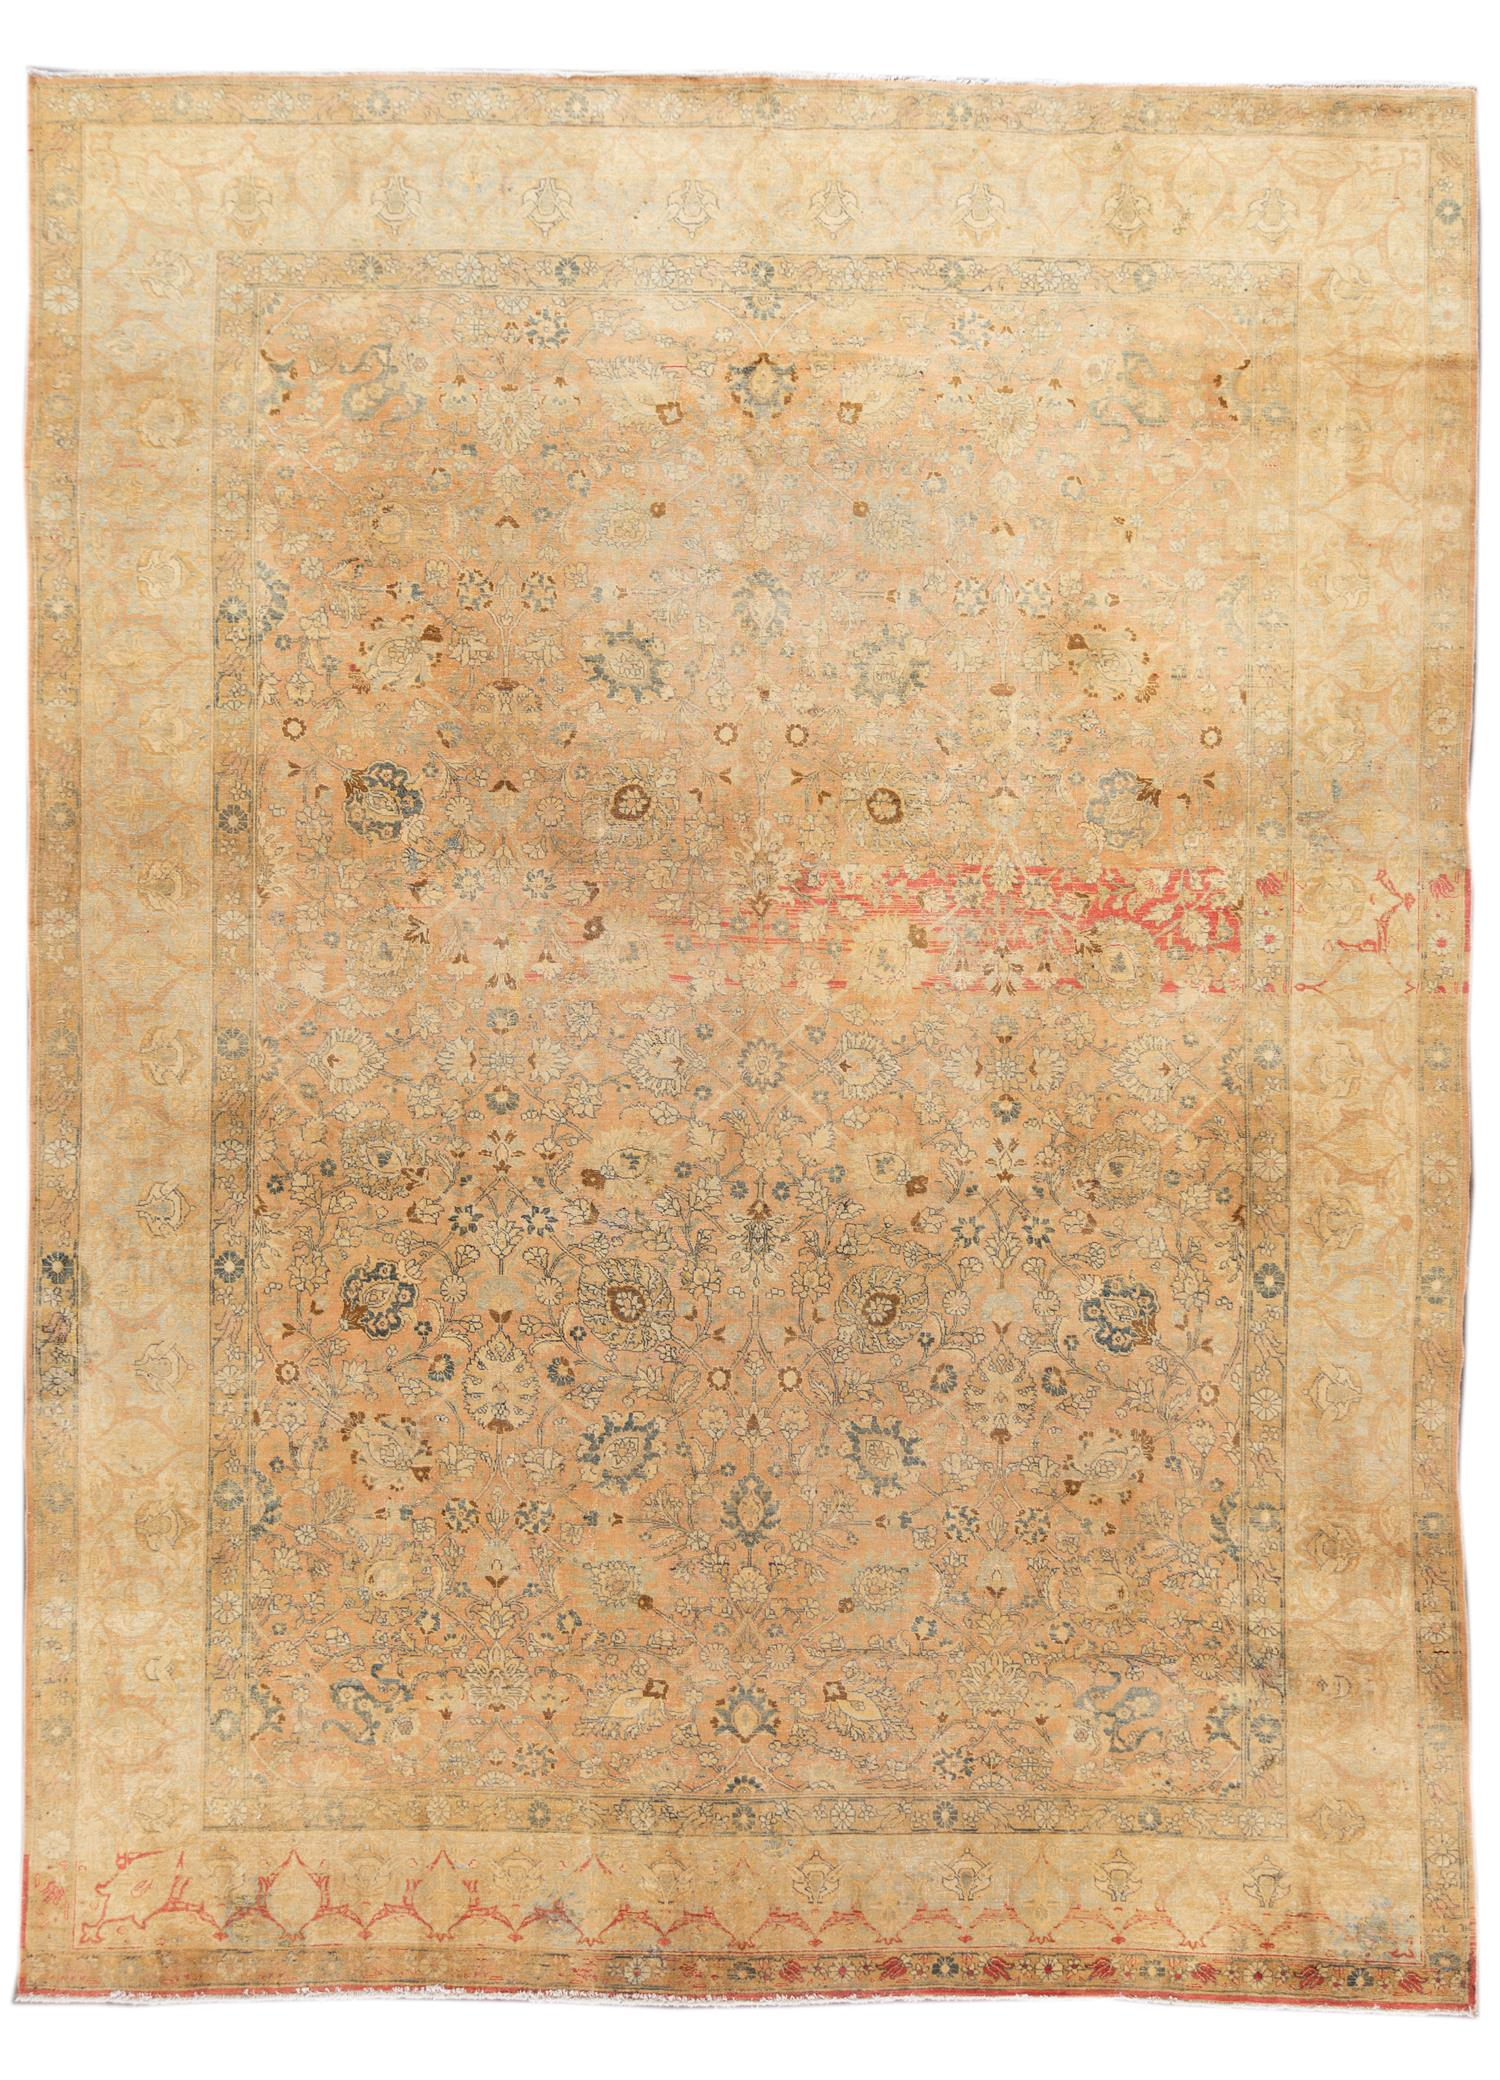 Antique Distressed Tan Persian Tabriz Wool Rug, 10x14